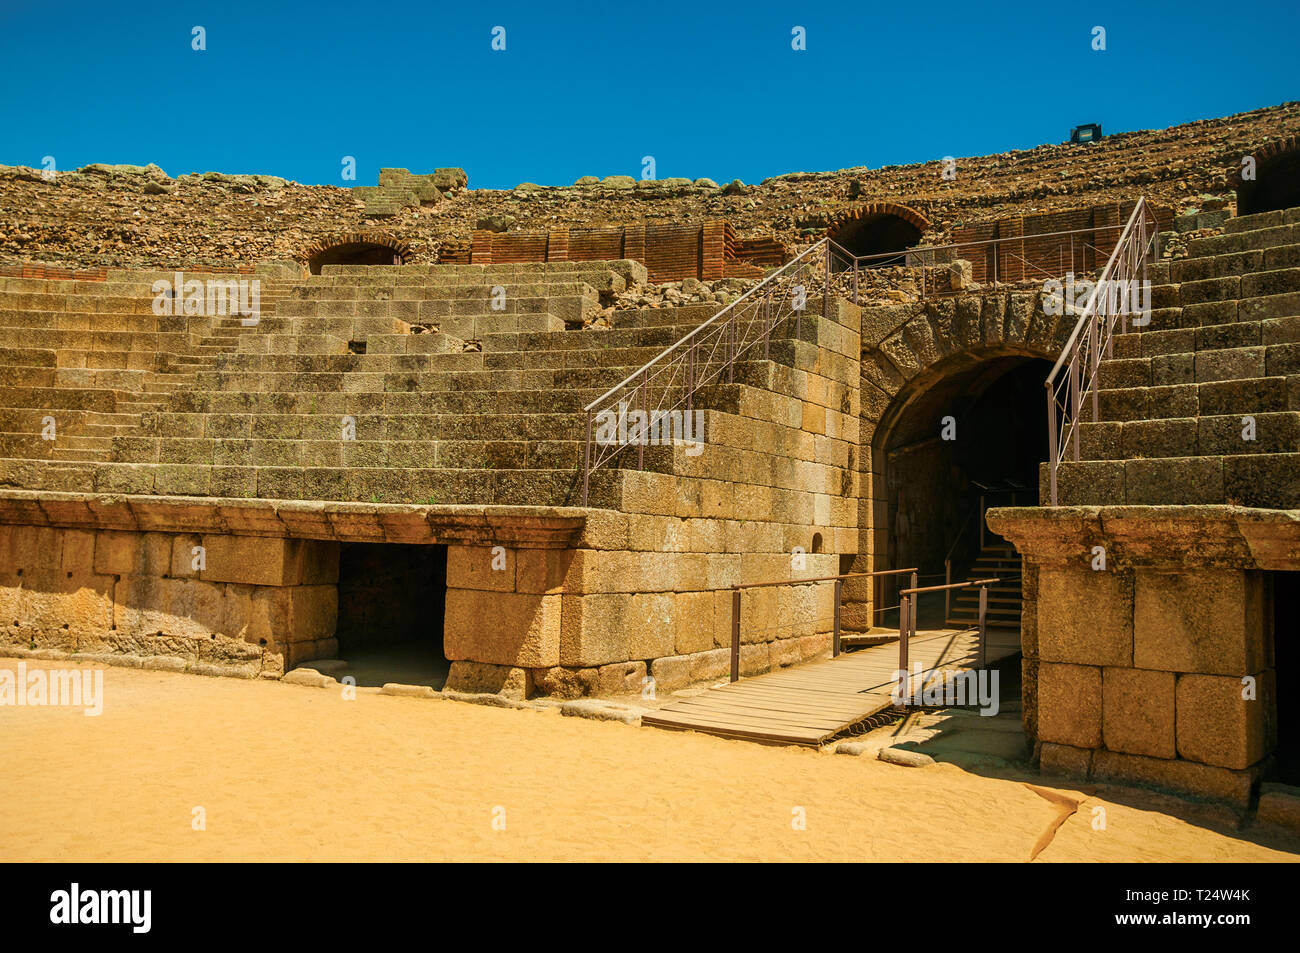 Exit in the bleachers of Roman Amphitheater at the huge archaeological site of Merida. The city preserves many buildings of ancient Rome in Spain. - Stock Image